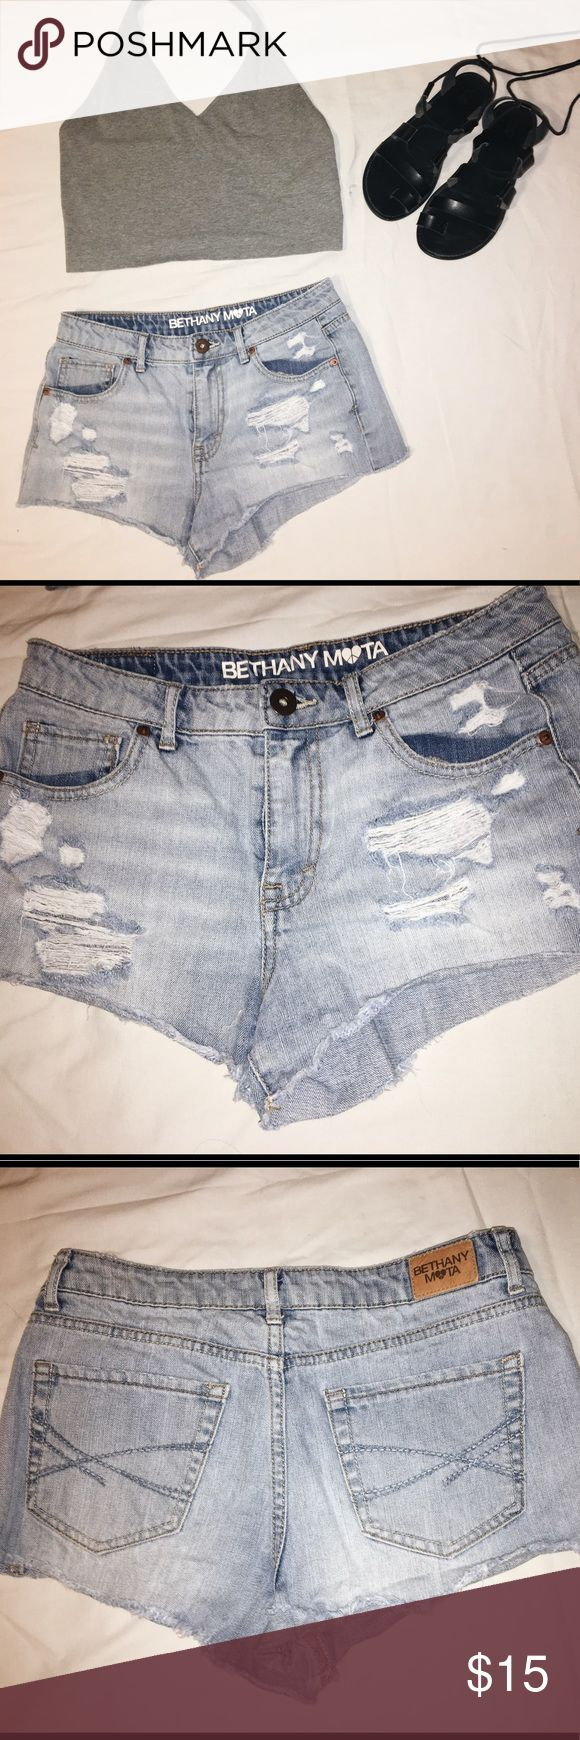 Bethany Mota (AERO) High Rise Shorty Denim Shorts size 6 (runs small) | light wash denim | distressed | excellent condition / lightly worn | from Aeropostale, Bethany Mota's clothing line   •ships right away  •clean, non-smoking home  •no trades  •comment any specific questions Aeropostale Shorts Jean Shorts